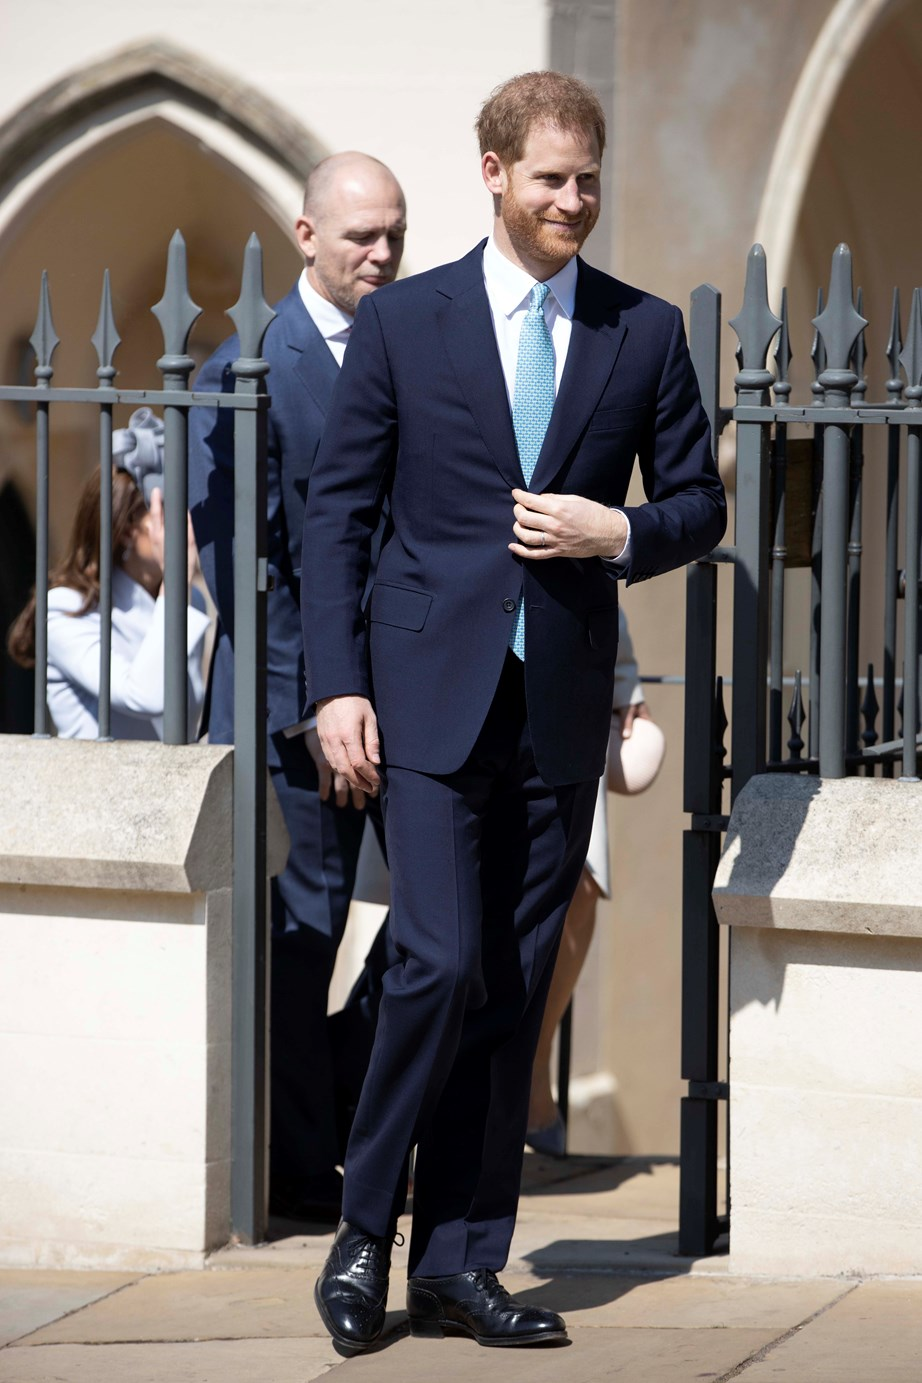 Prince Harry leaving the Easter Sunday service followed by Mike Tindall. *(Image: Getty)*